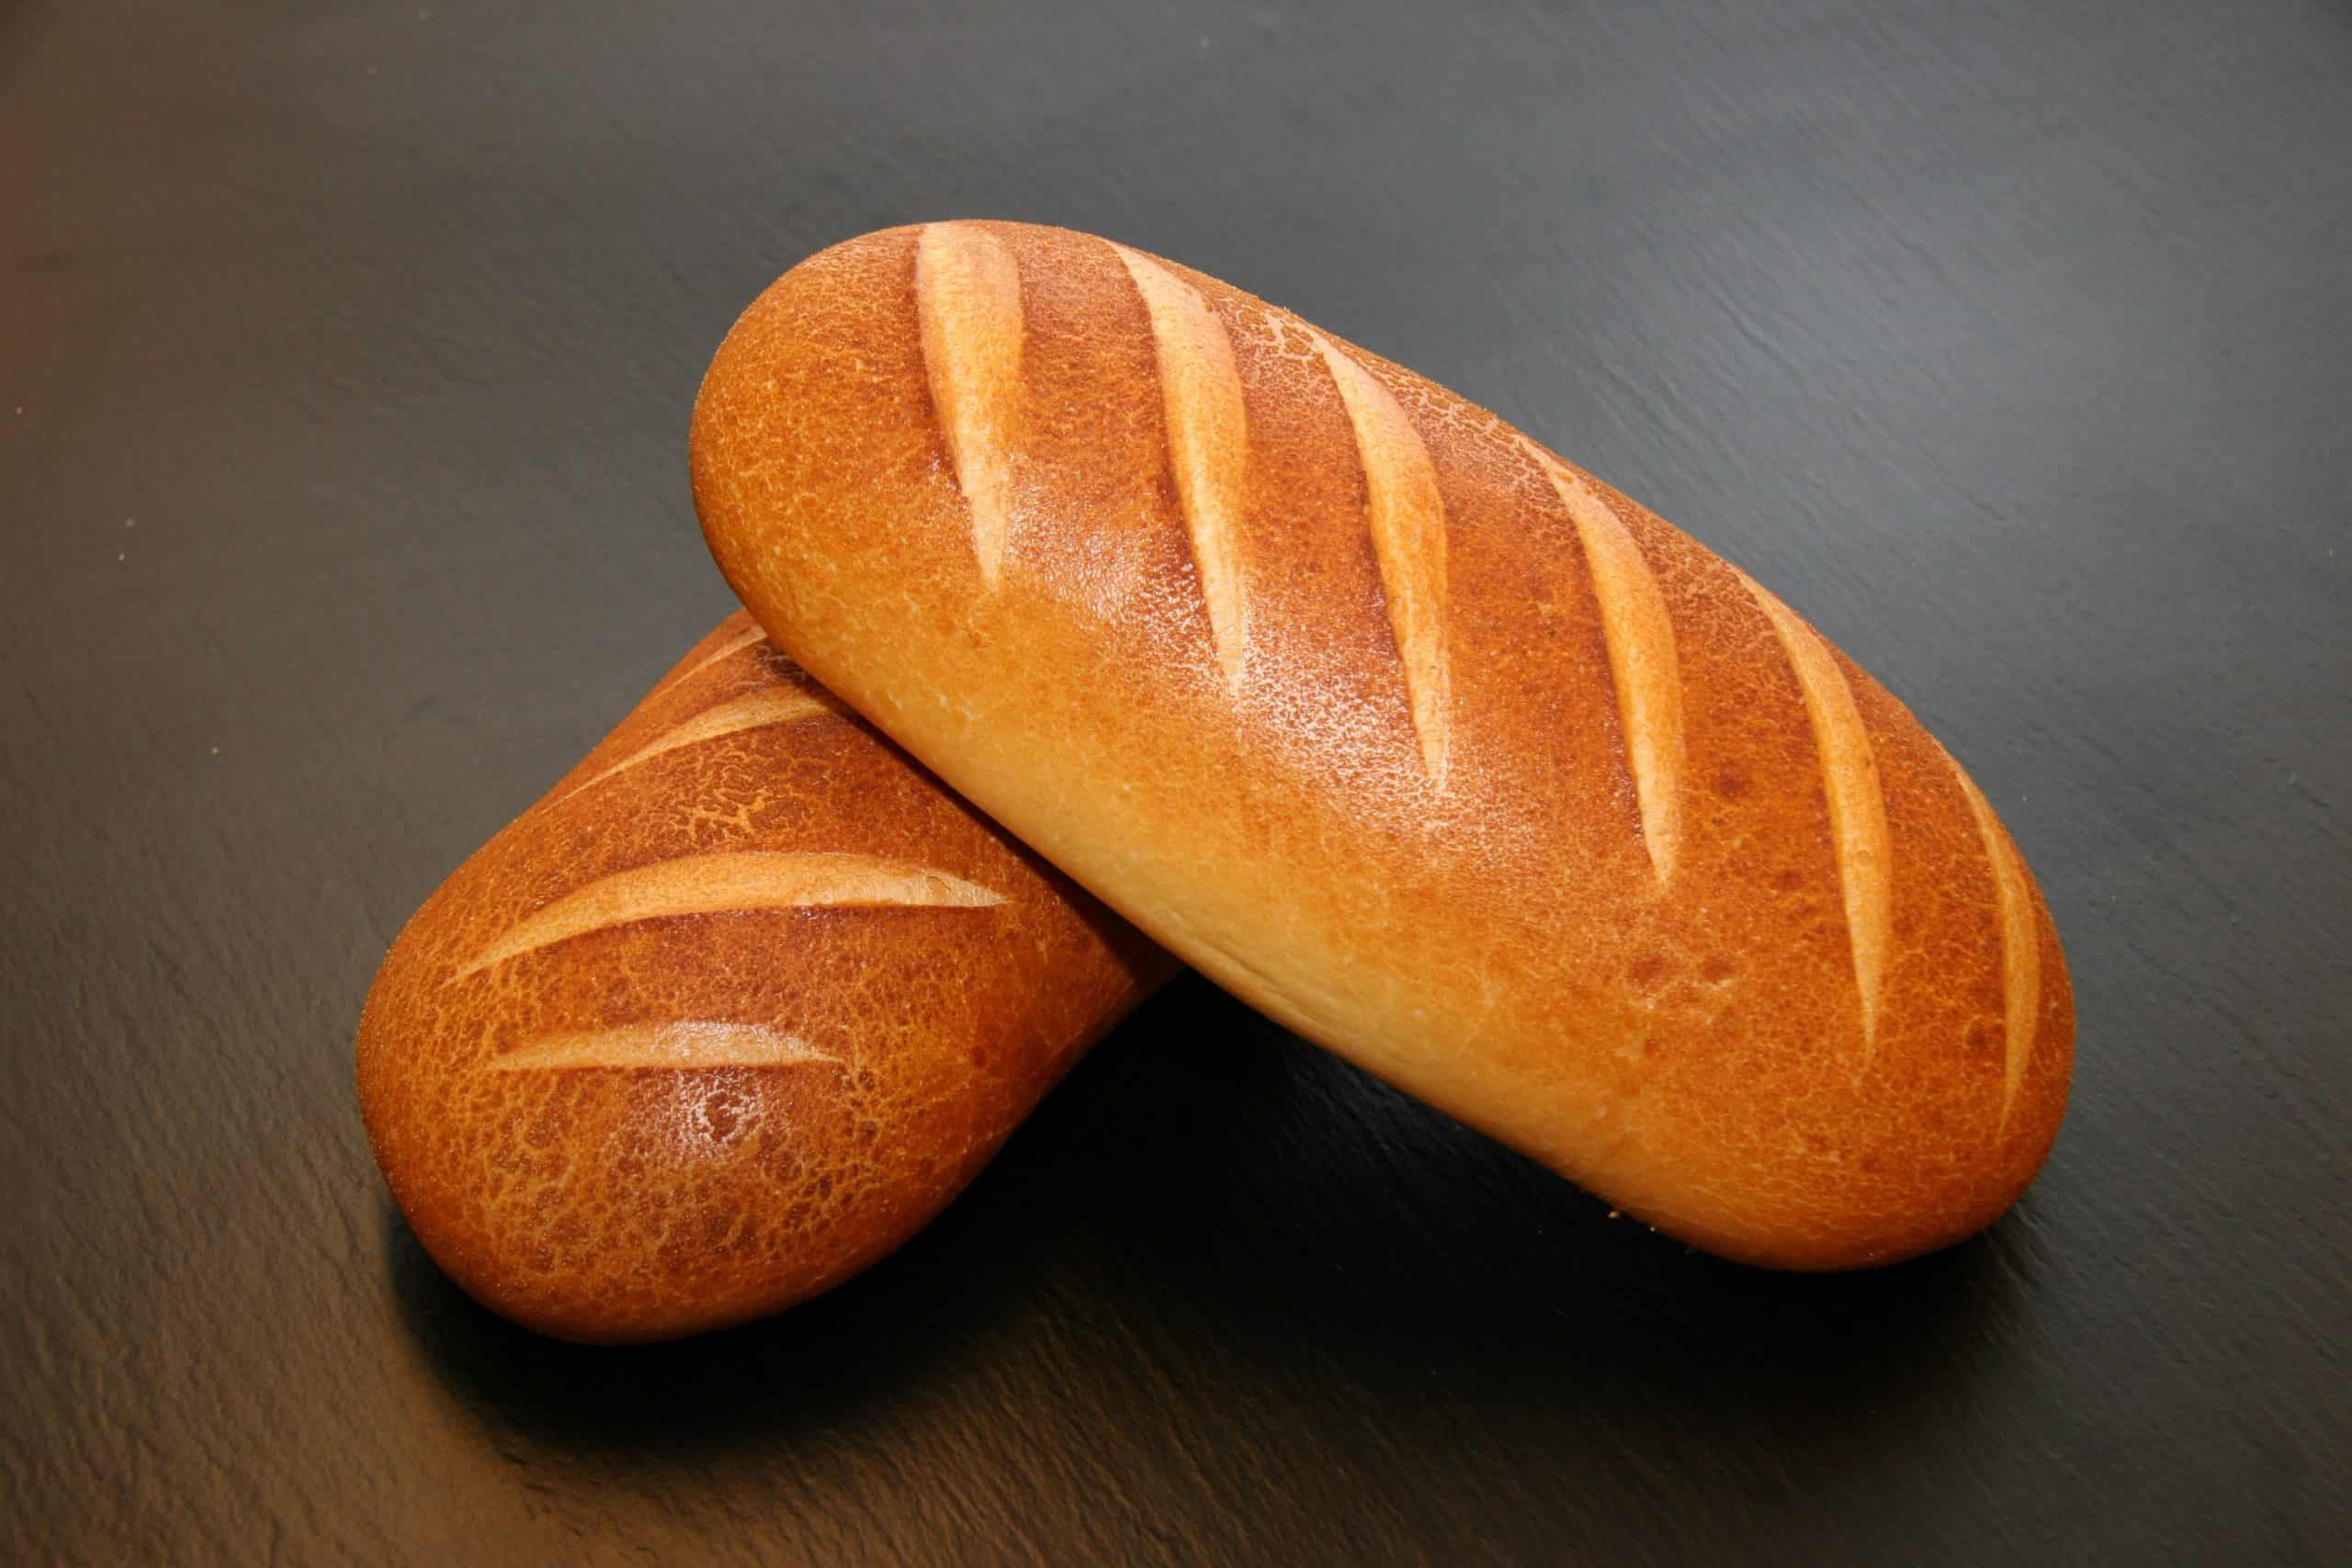 Ideas In Making Beautiful And Delicious Bread